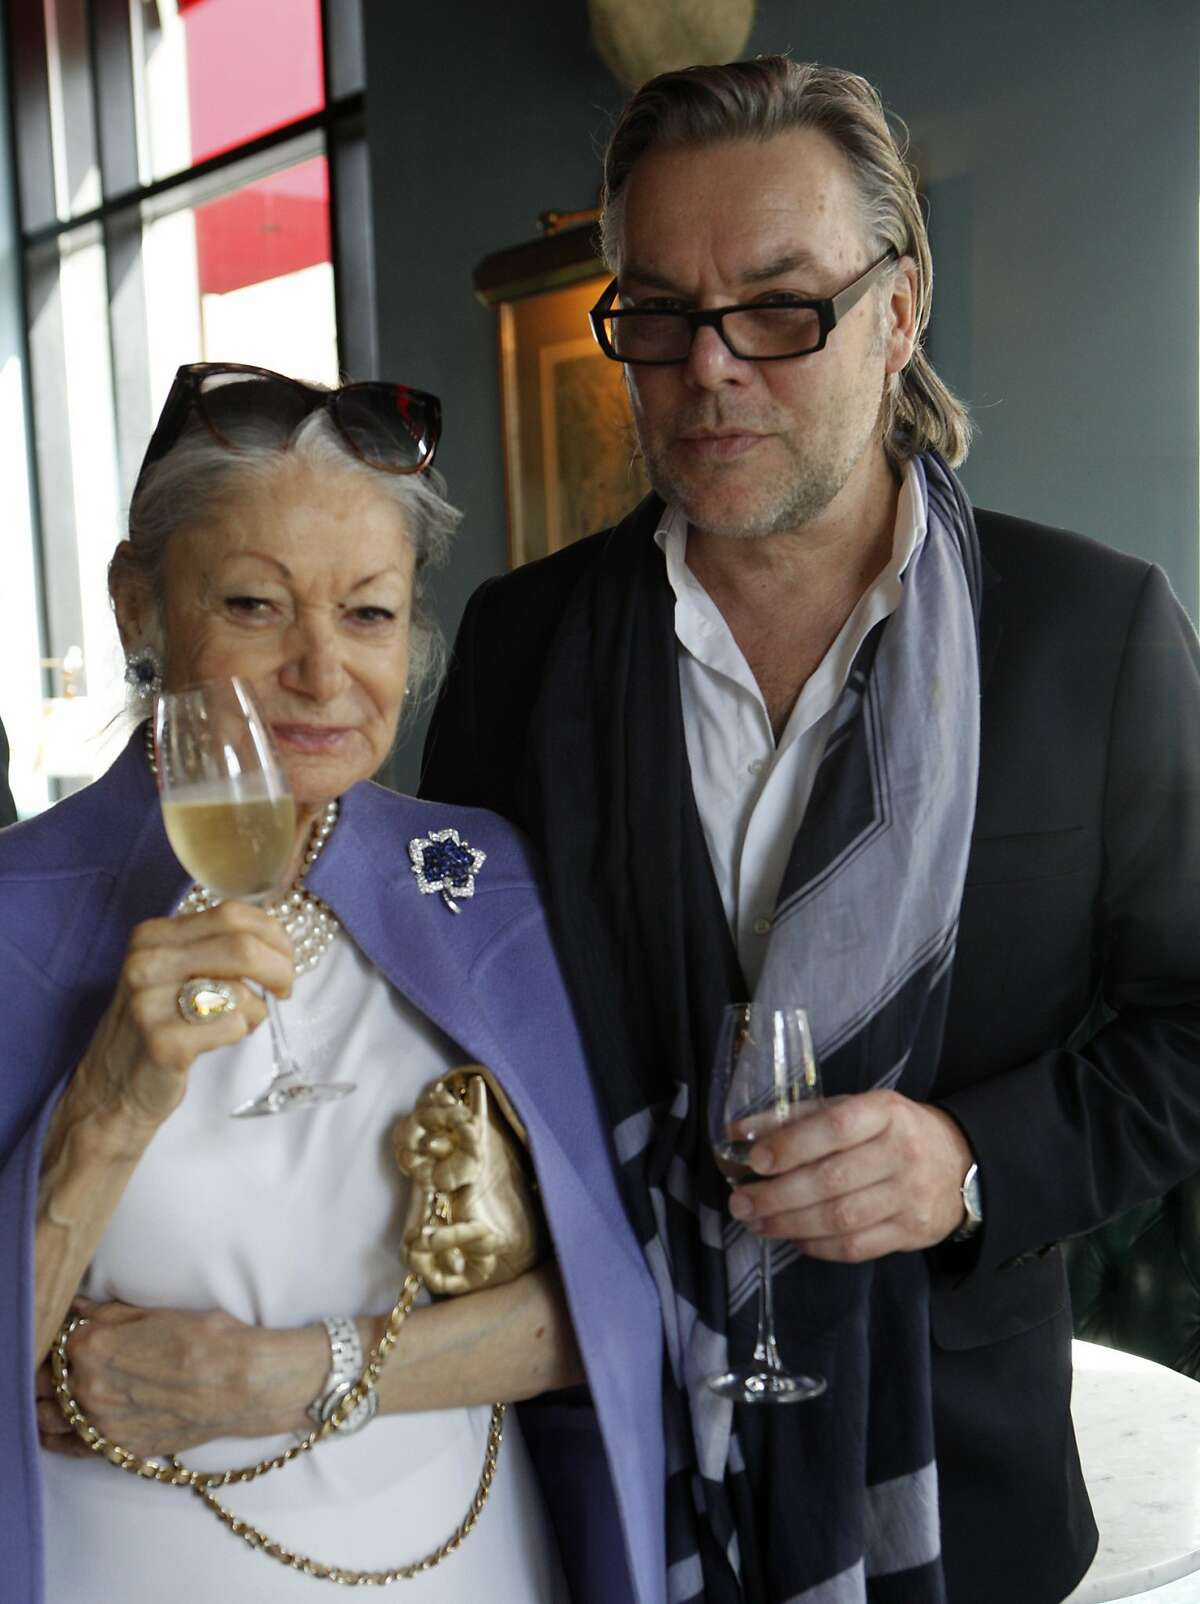 Celebrating the release of his book David Downton: Portraits of the Worlds Most Stylish Women, left to right, Denise Hale and David Downton, at The Cavalier October 8, 2015.